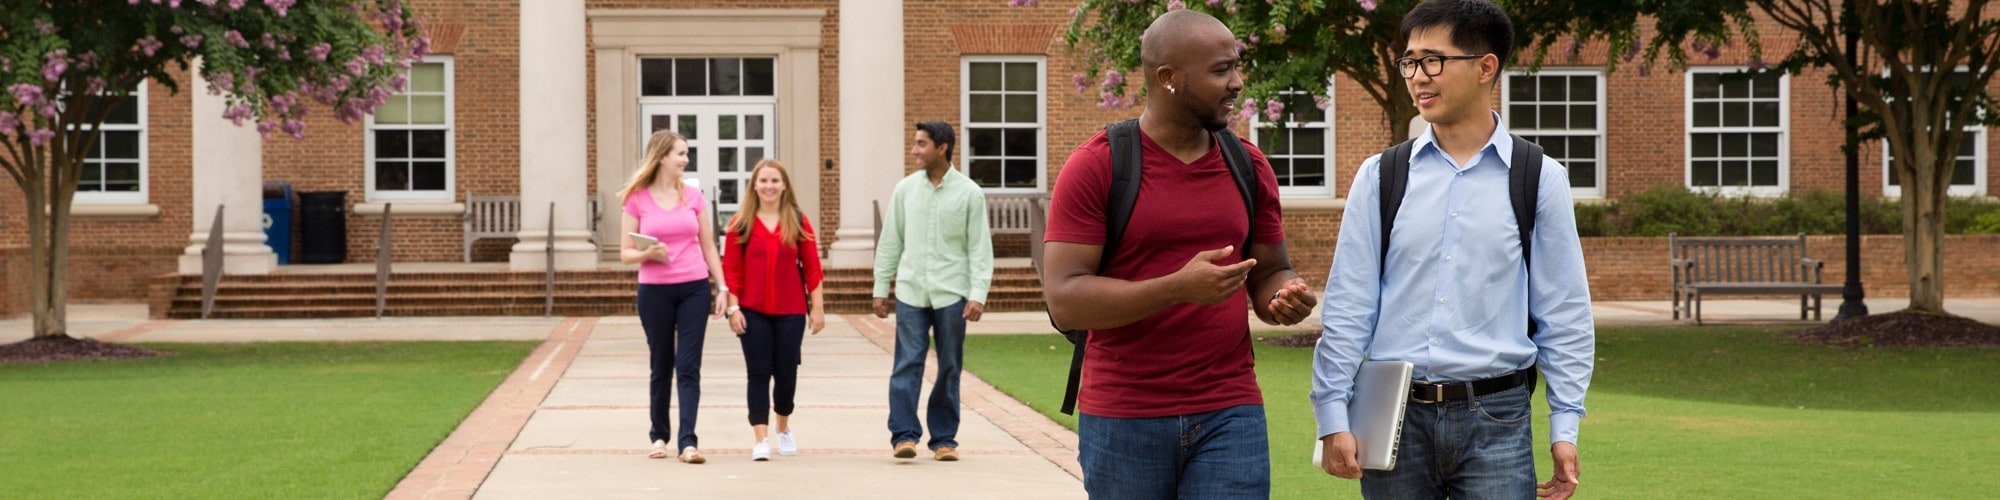 students and grad students walking on campus